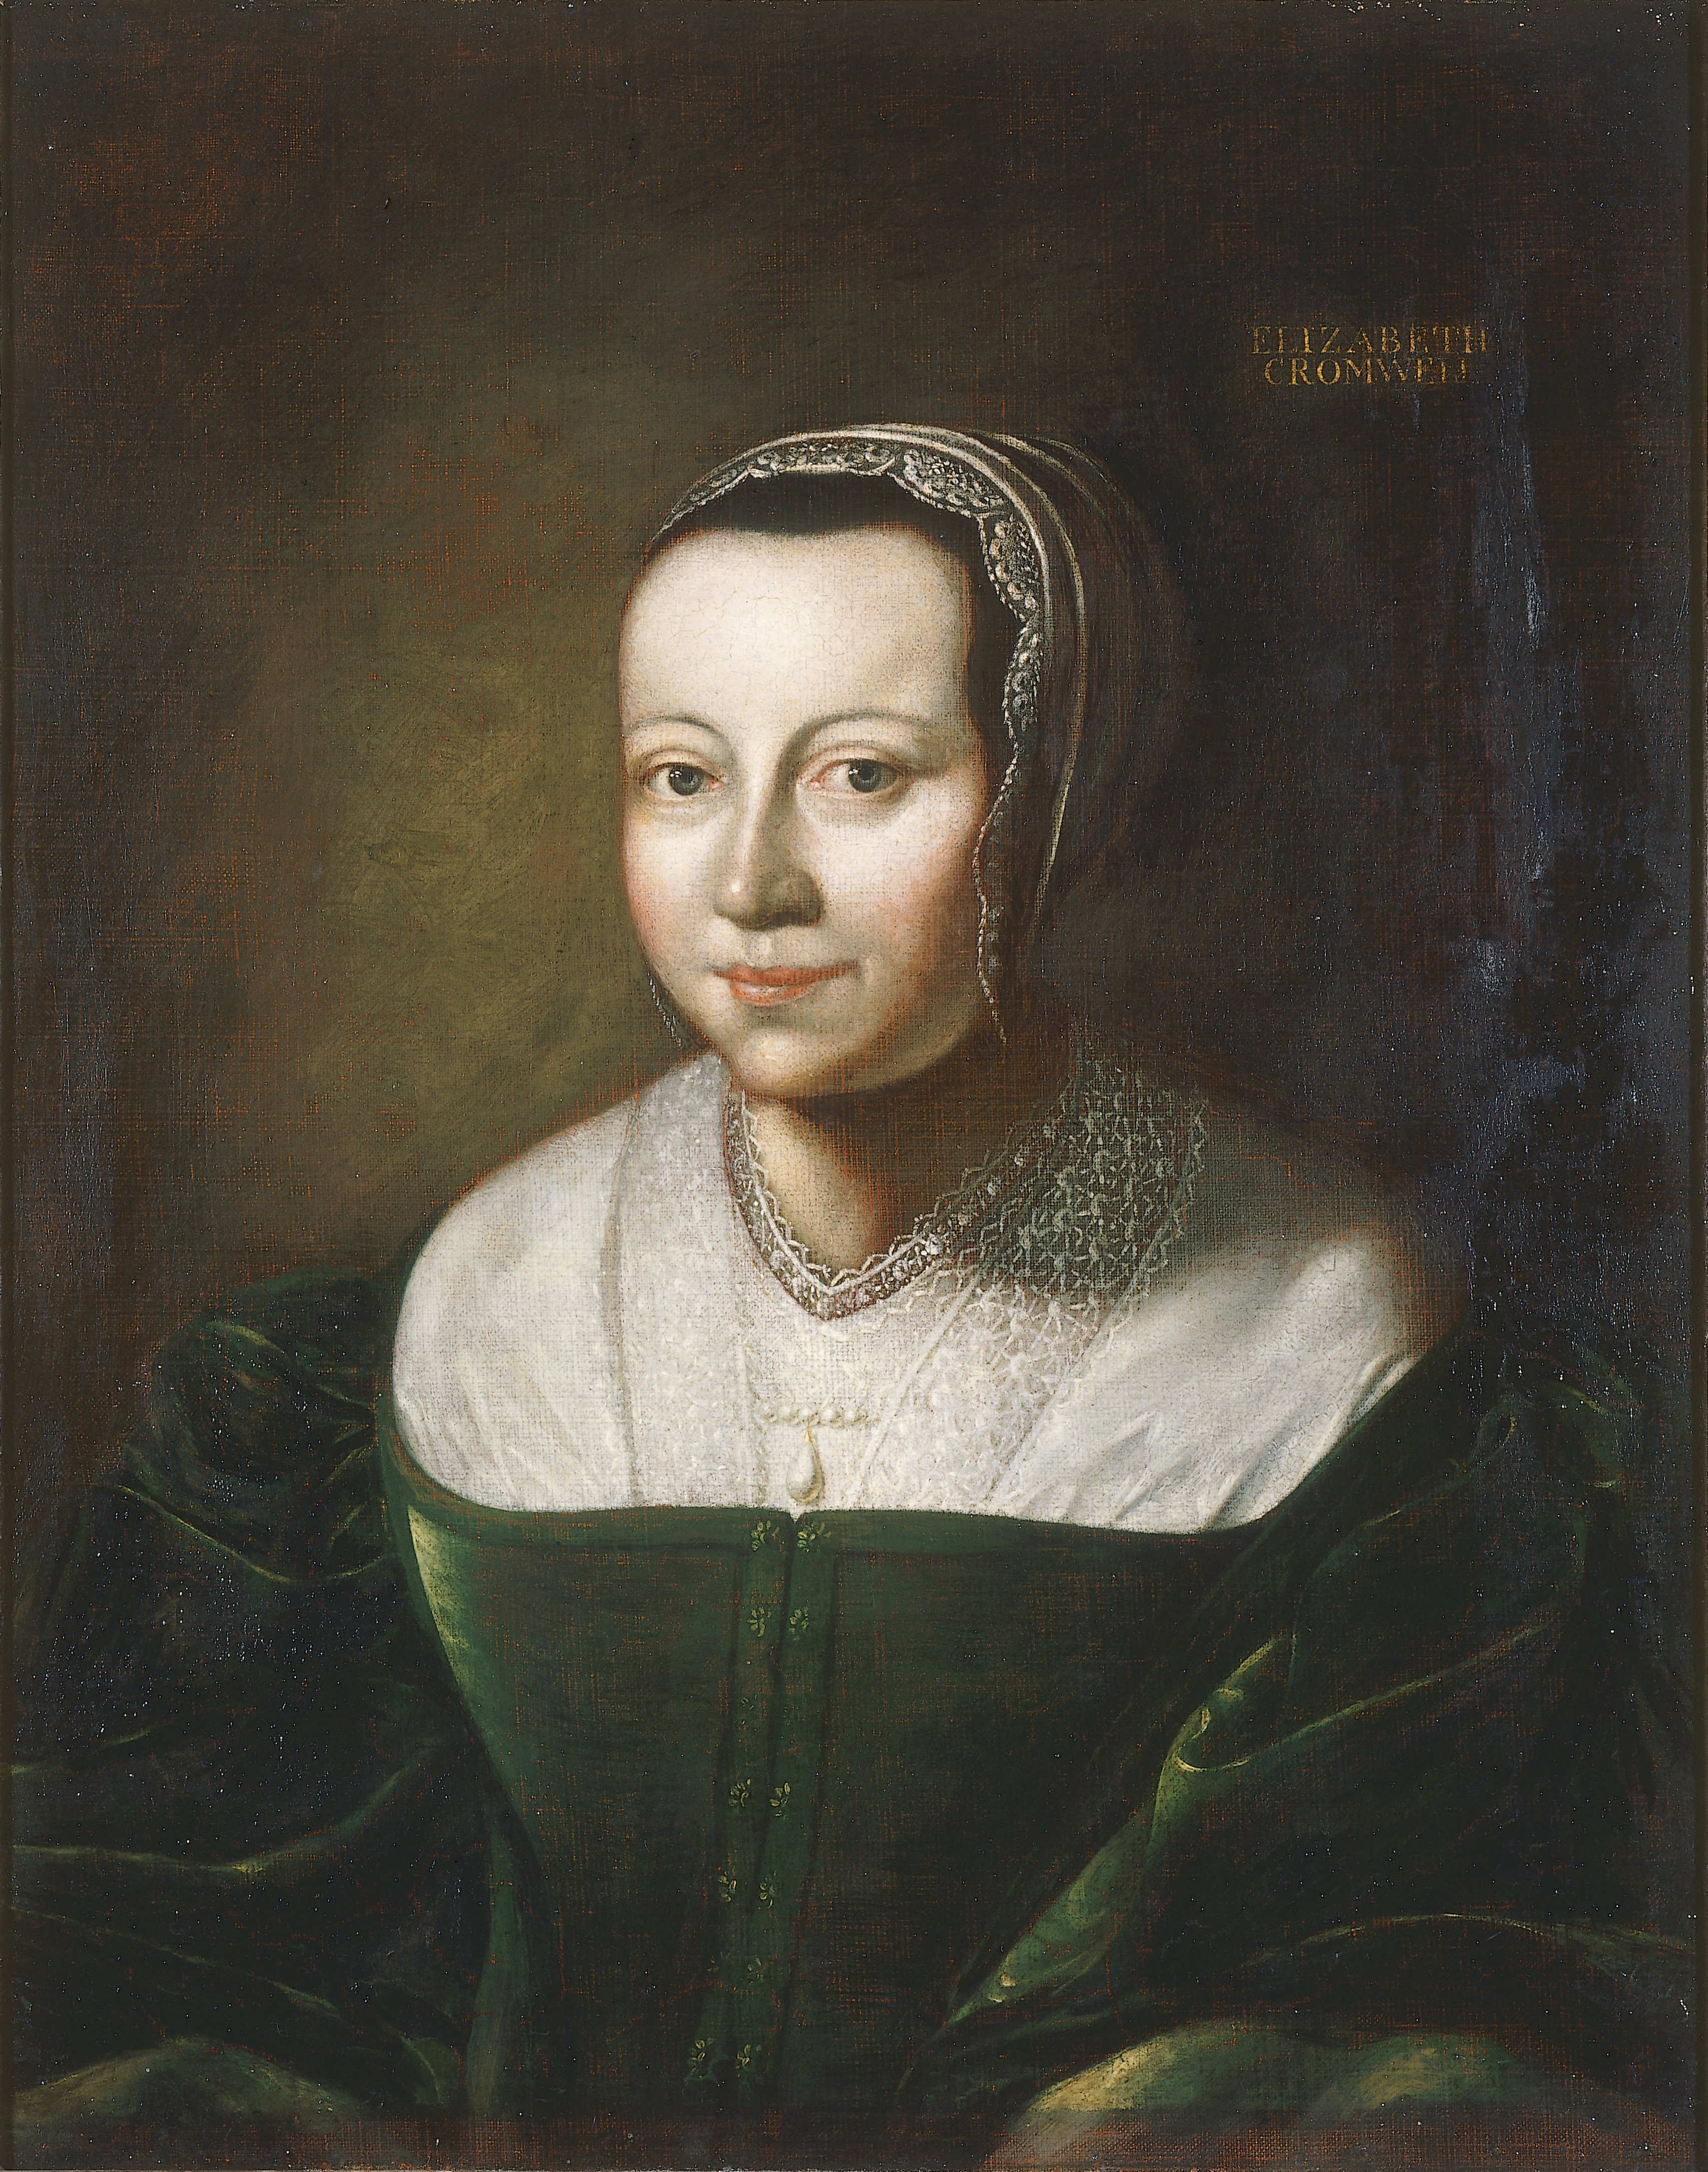 Portrait of Elizabeth Cromwell, English School, late 1600s, Oil on Canvas. thumbnail